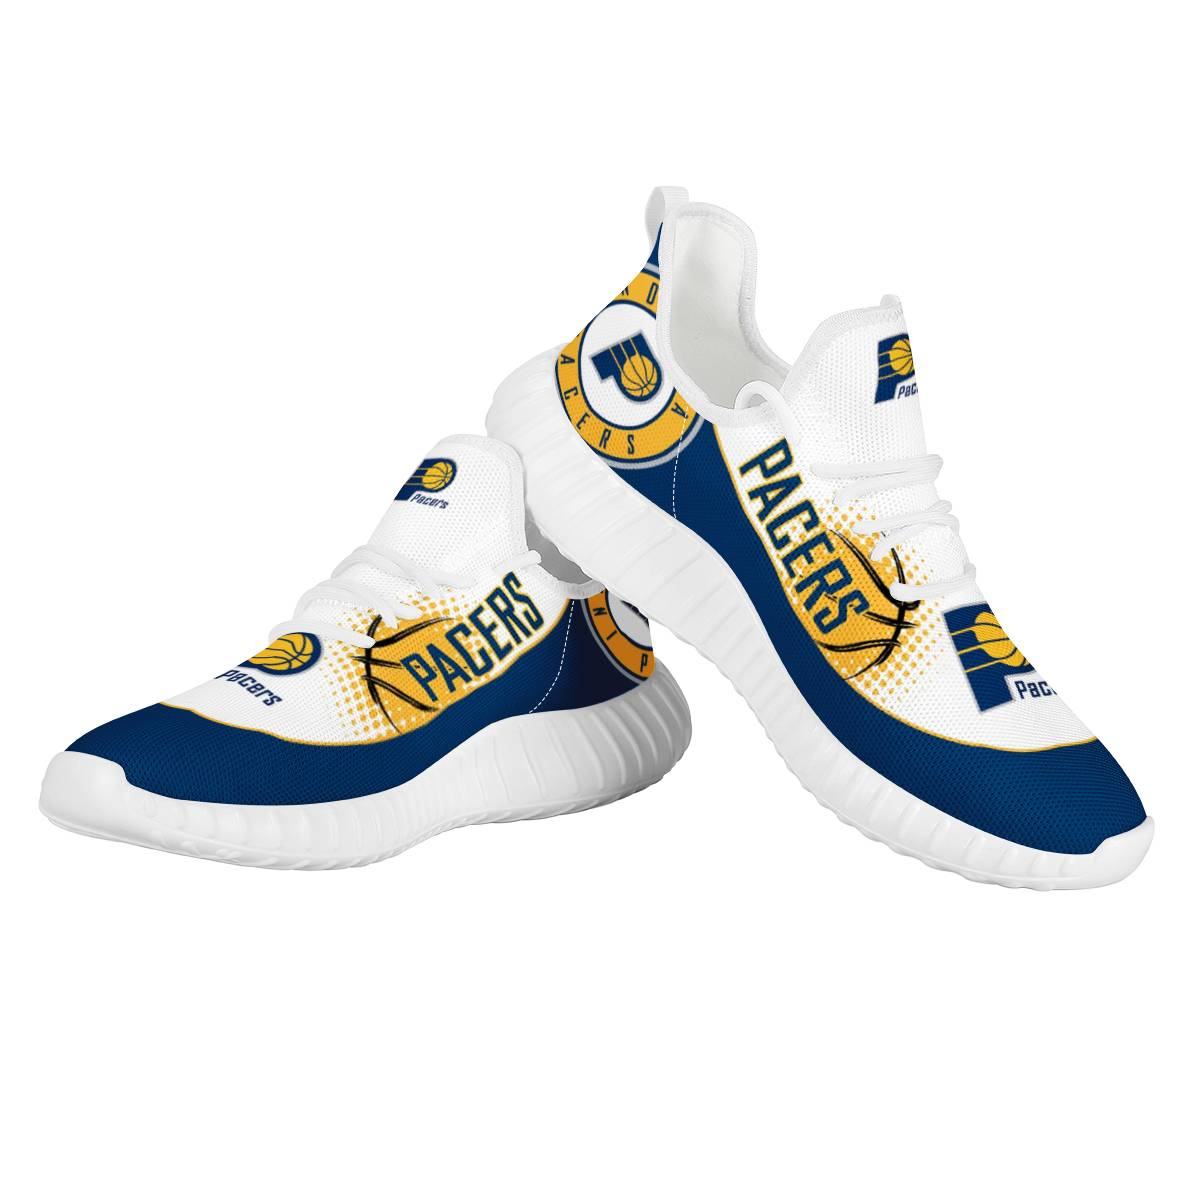 Men's Indiana Pacers Mesh Knit Sneakers/Shoes 001